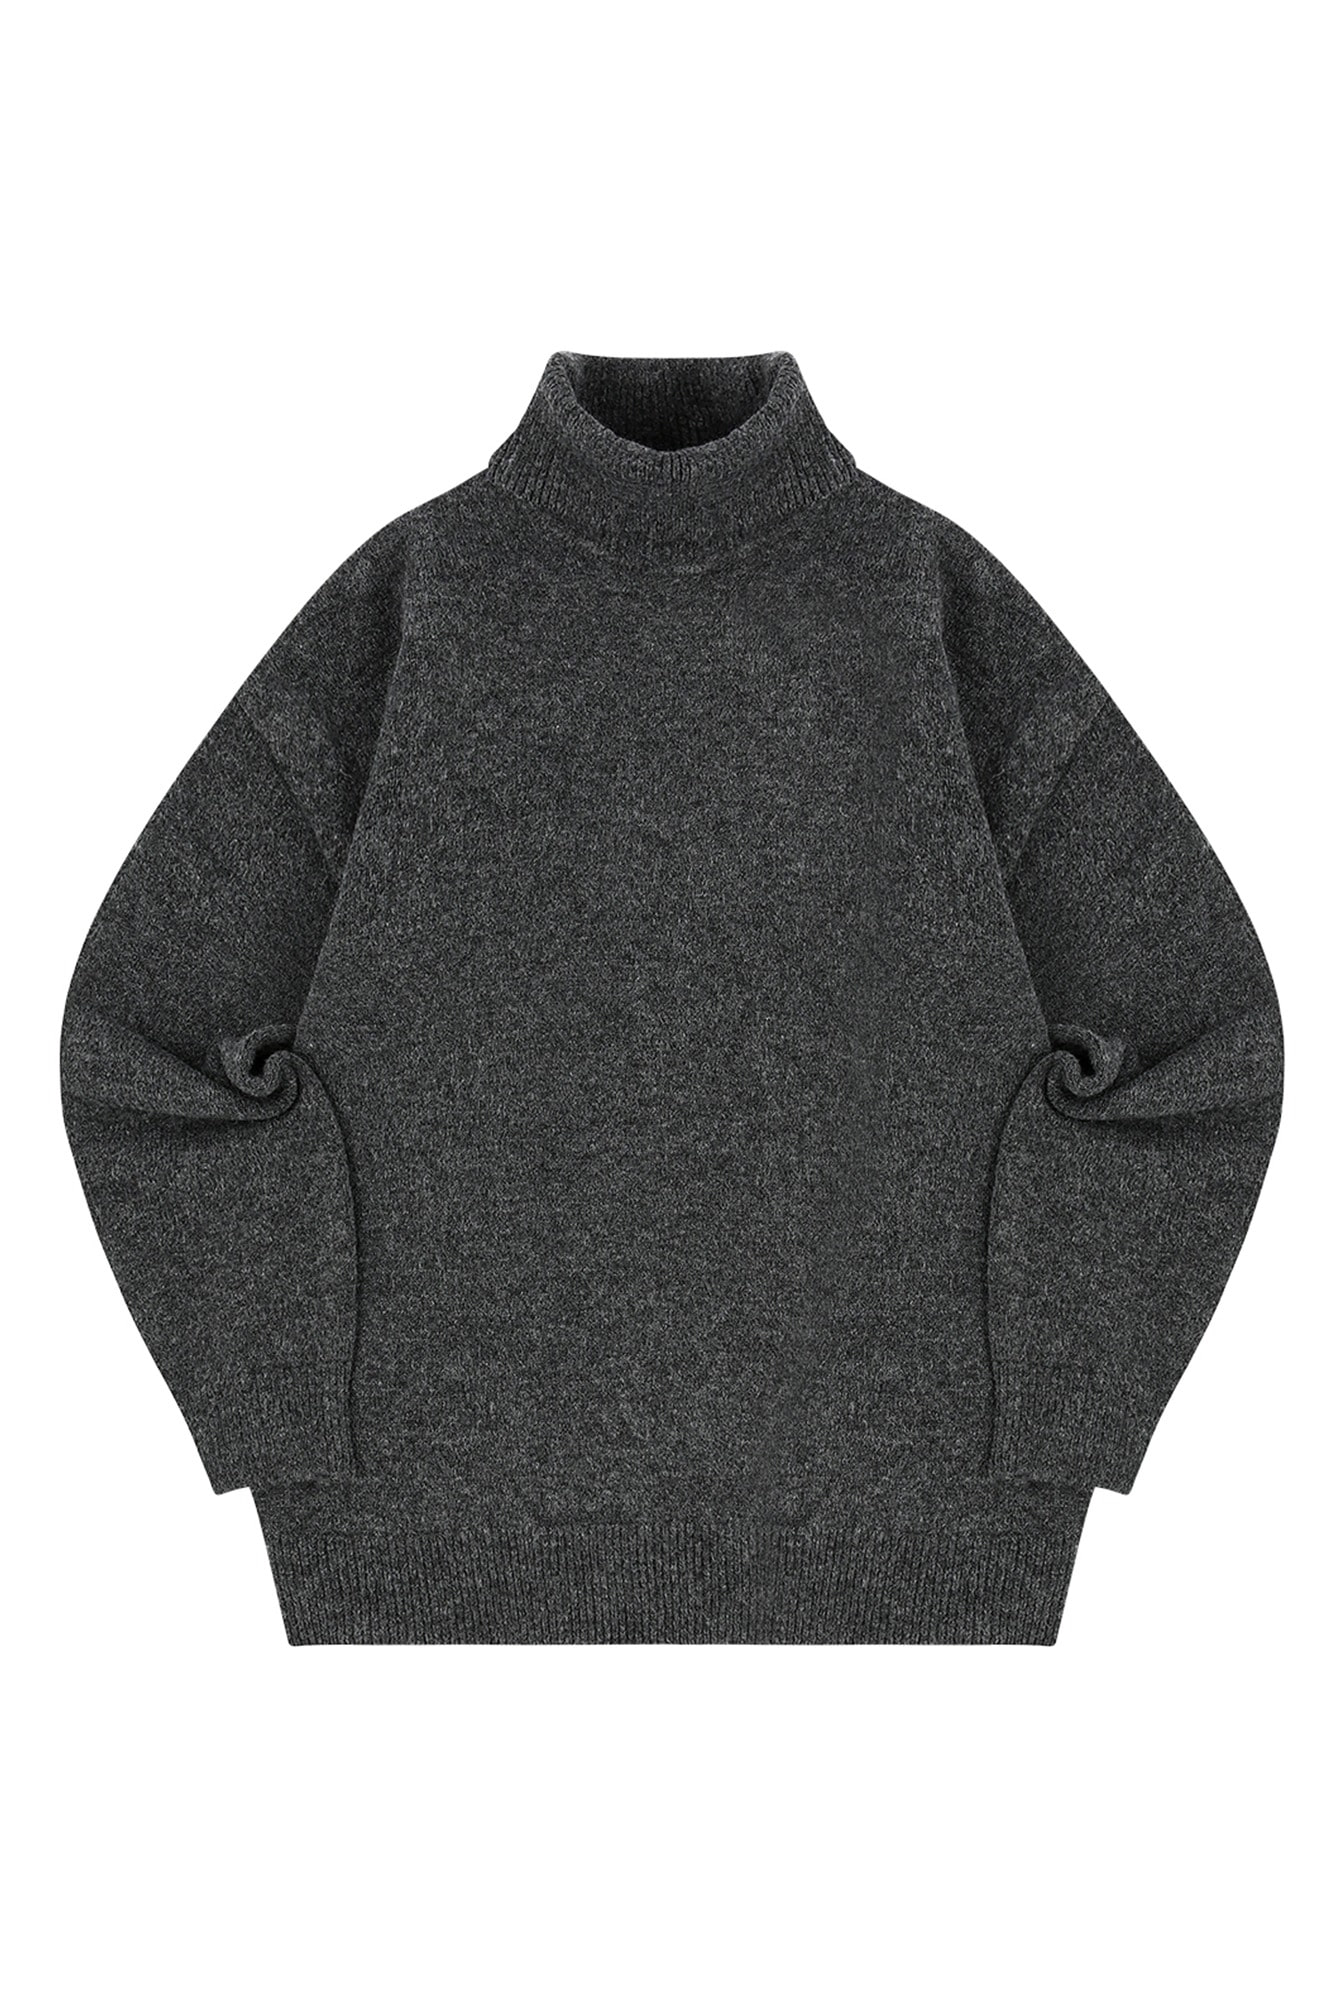 MELANGE TURTLE NECK SWEATER_CHARCOAL